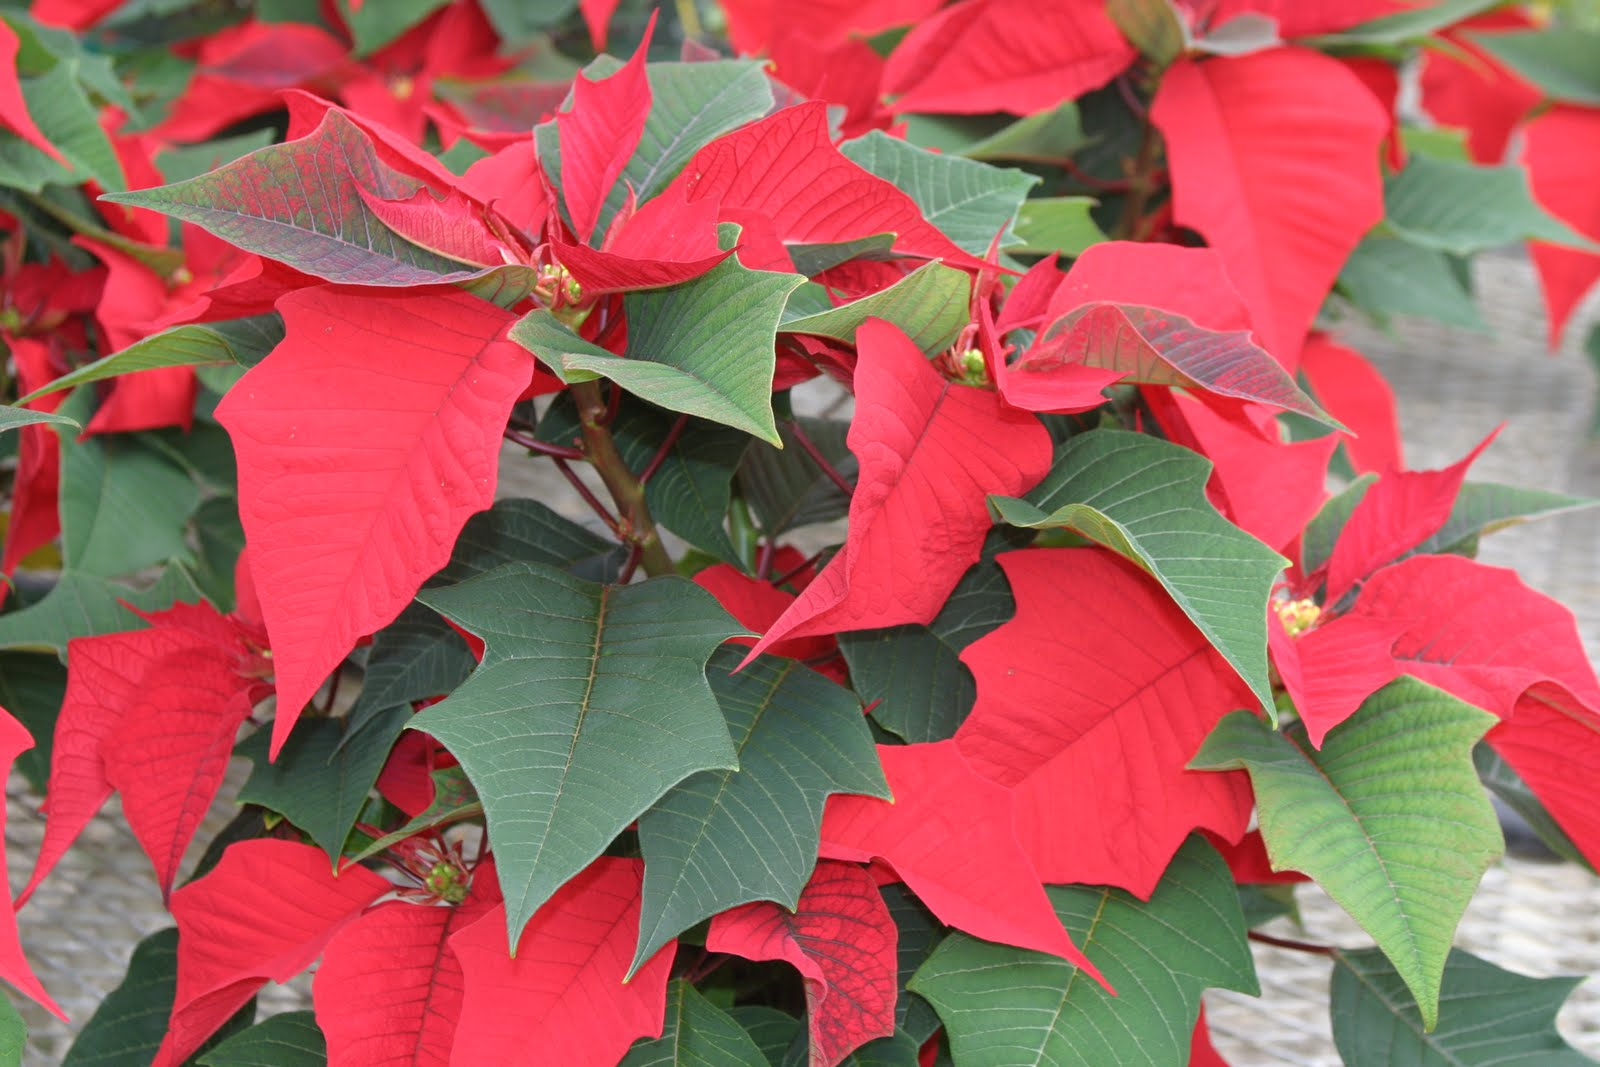 or red poinsettia - photo #41